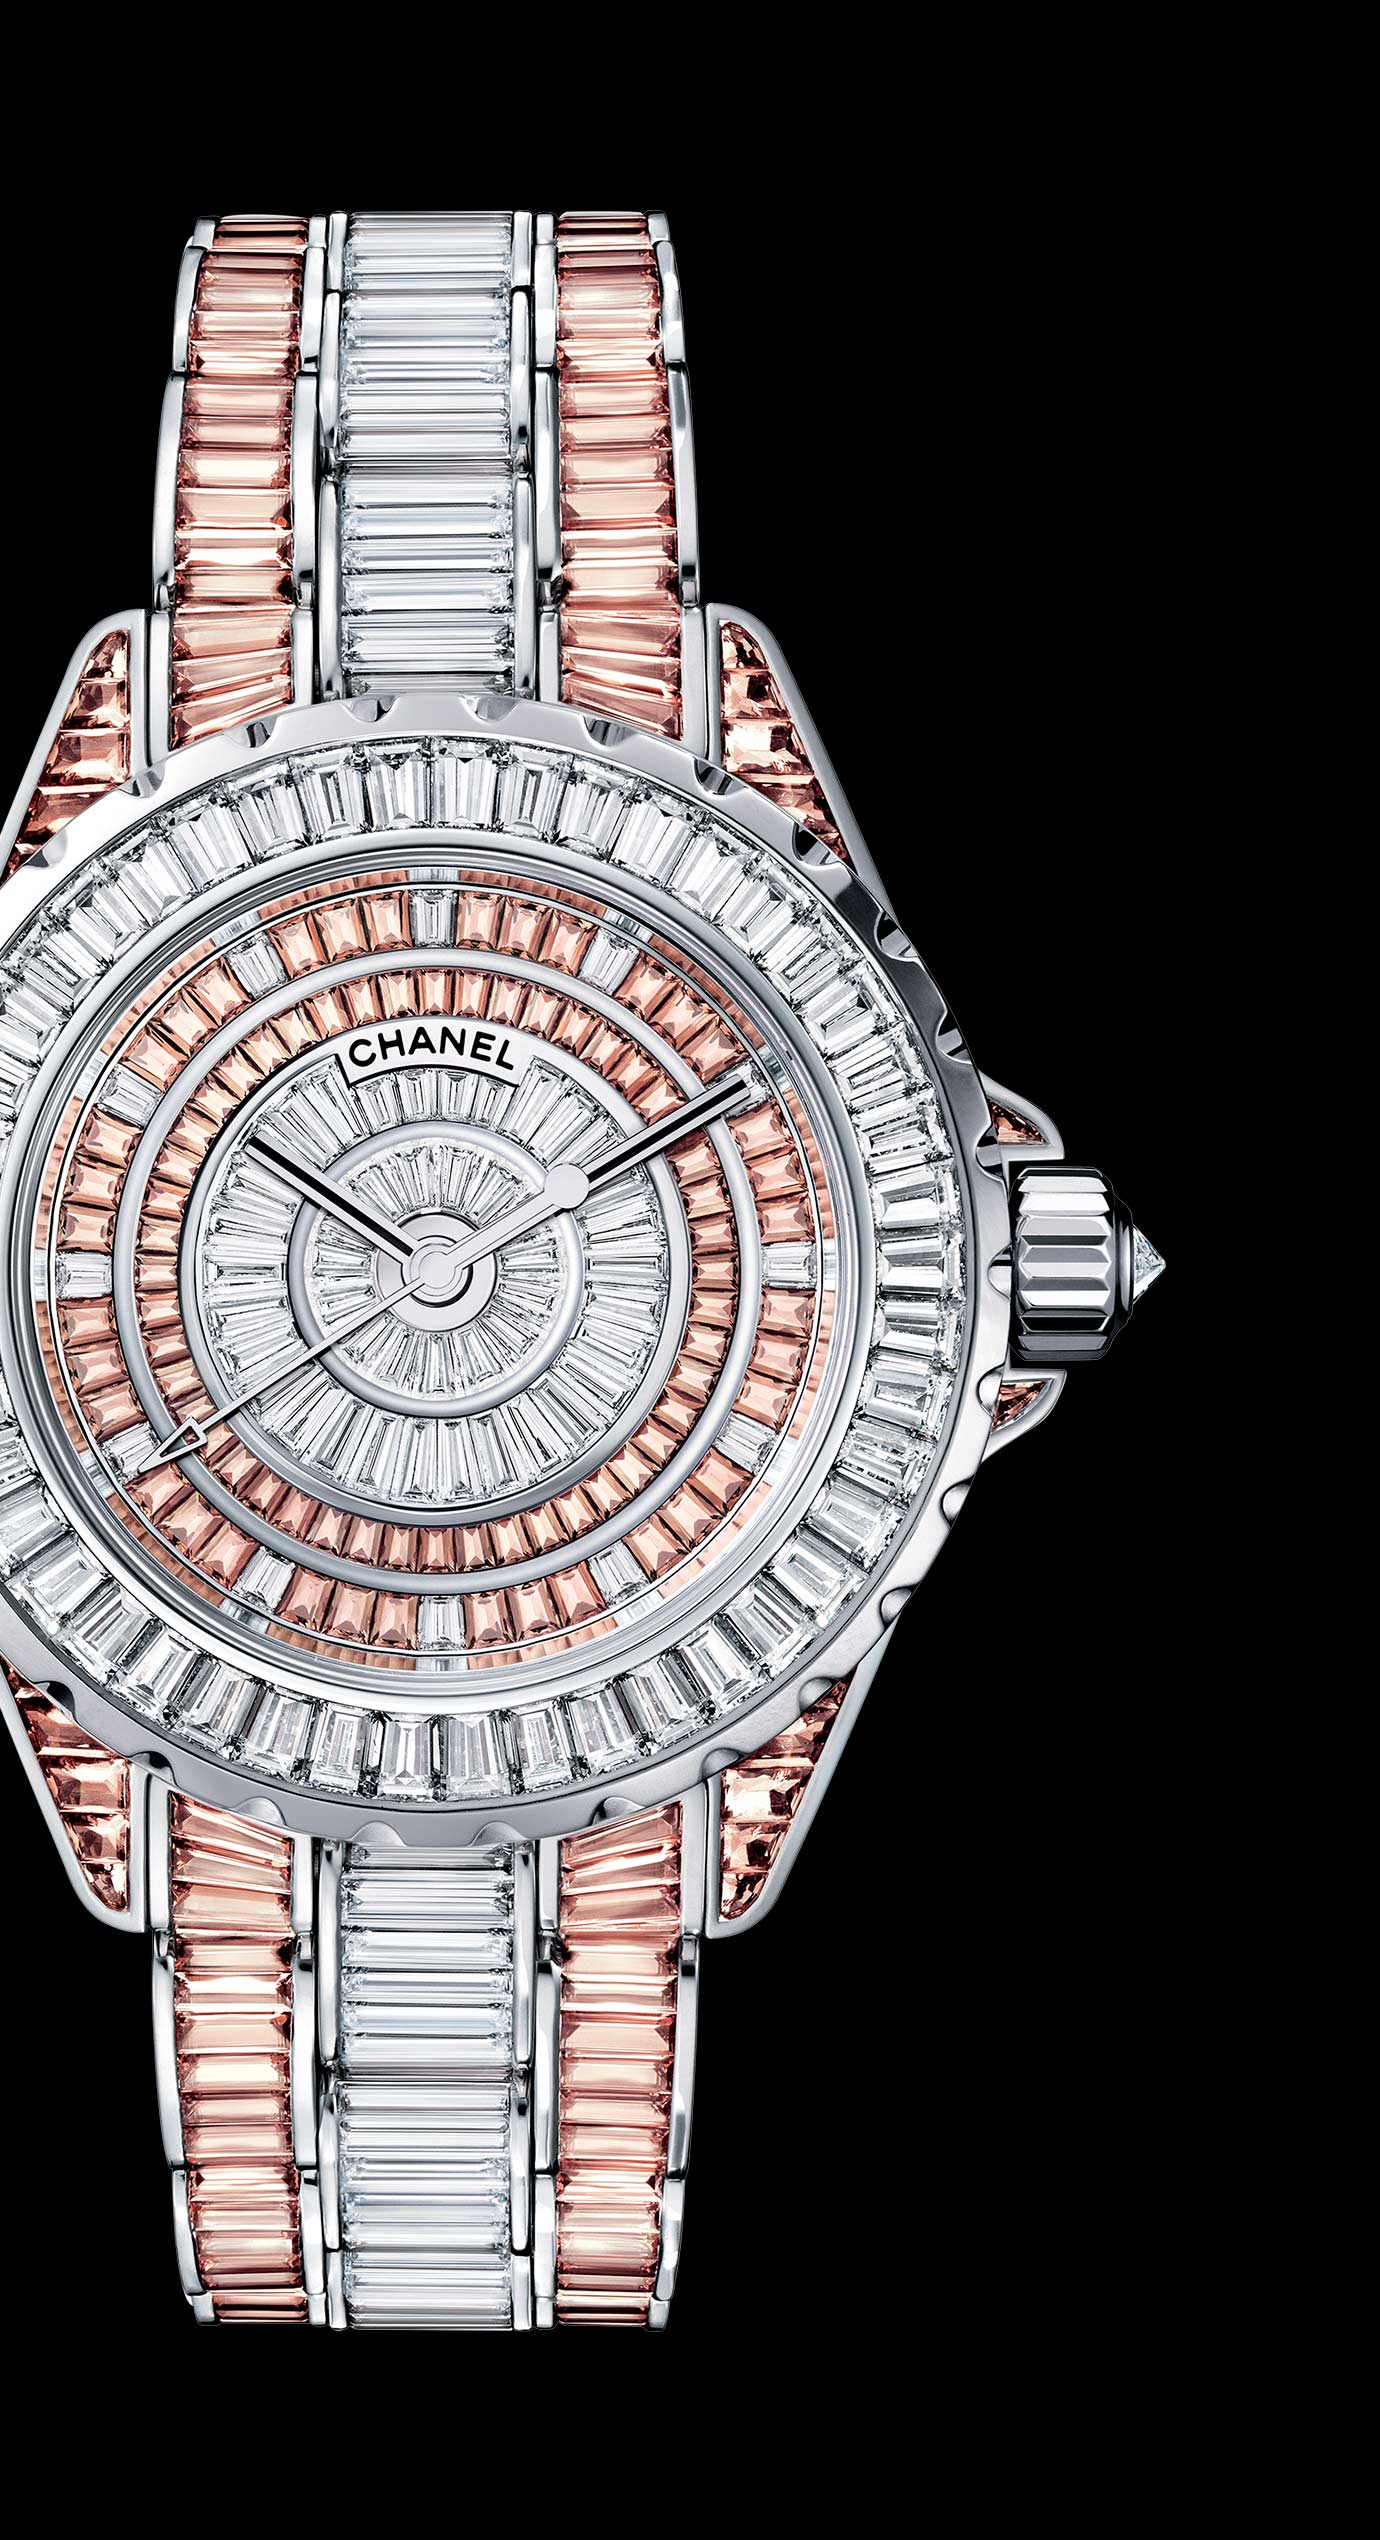 J12 High Jewelry in white gold, case, dial, bezel and bracelet set with baguette-cut diamonds and cognac sapphires.